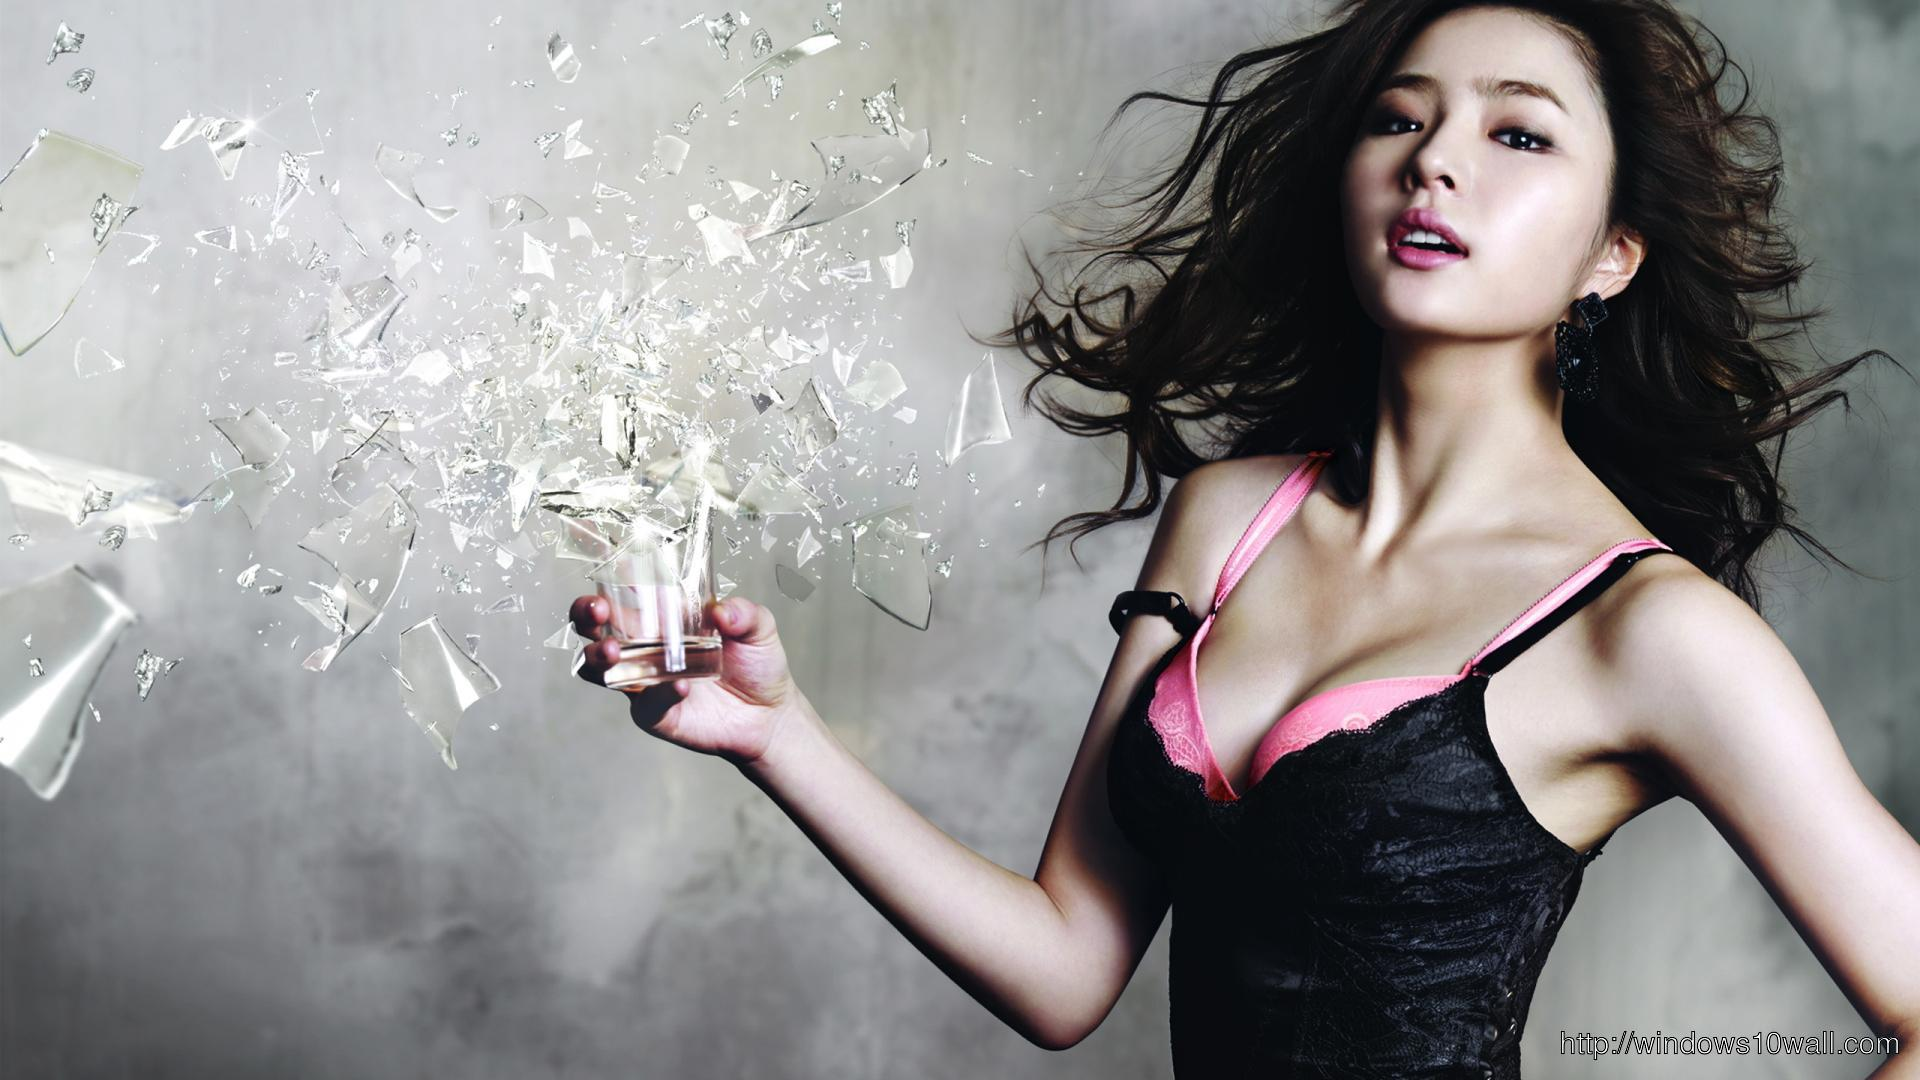 Cute Girl Breaking Glass FB Background Cover